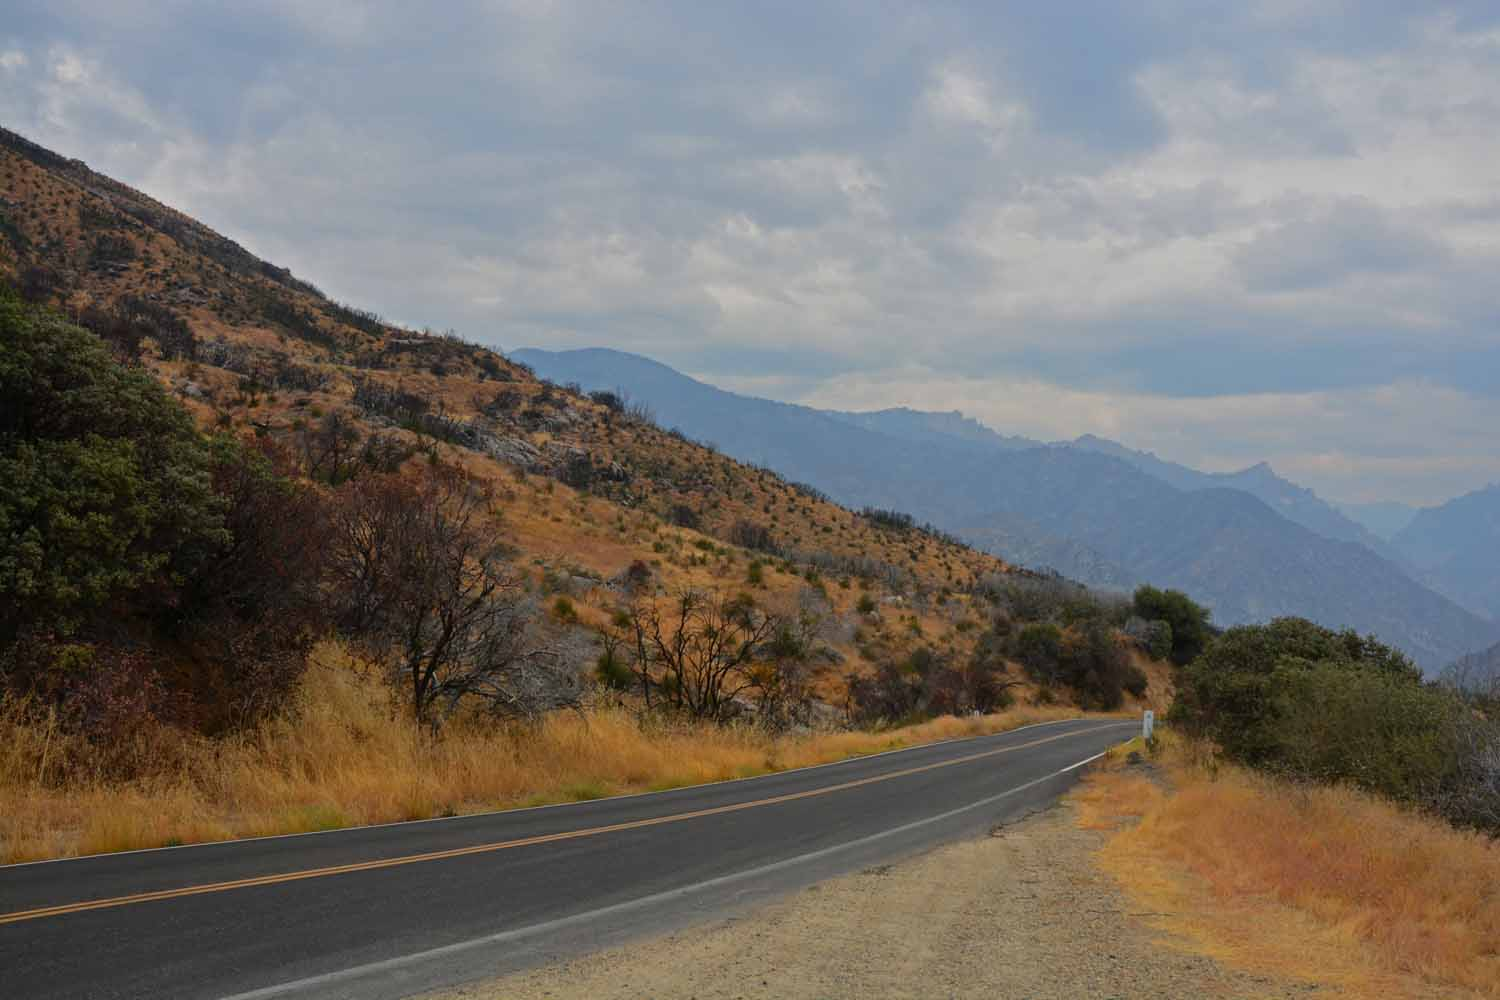 We took a short cut to King National Park which still takes several hours.  The drive through the country was an exceptional experience one that we really enjoyed.  However coming back to our RV site at night the trip seemed twice as long...